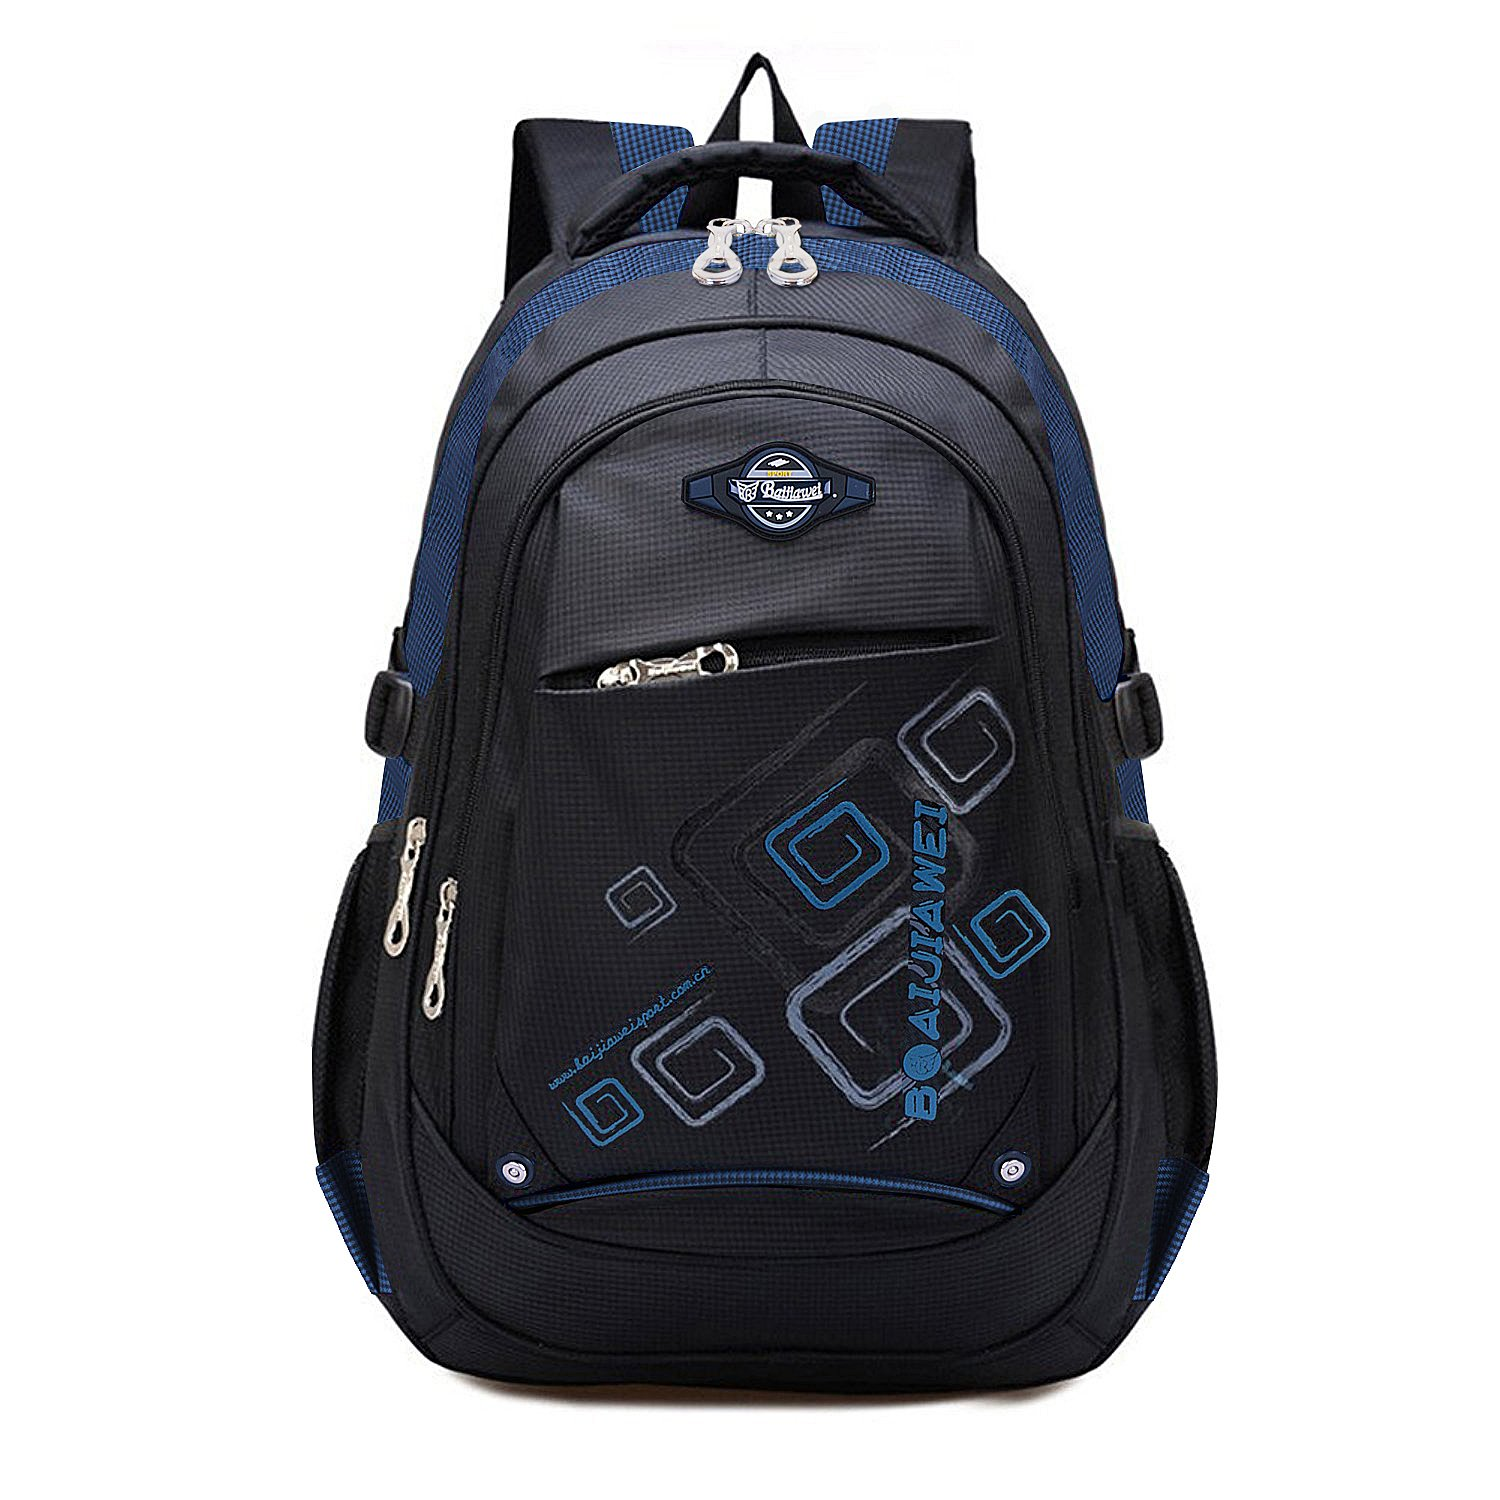 MAYZERO Waterproof School Bags Durable Travel Camping Backpacks for Boys and Girls